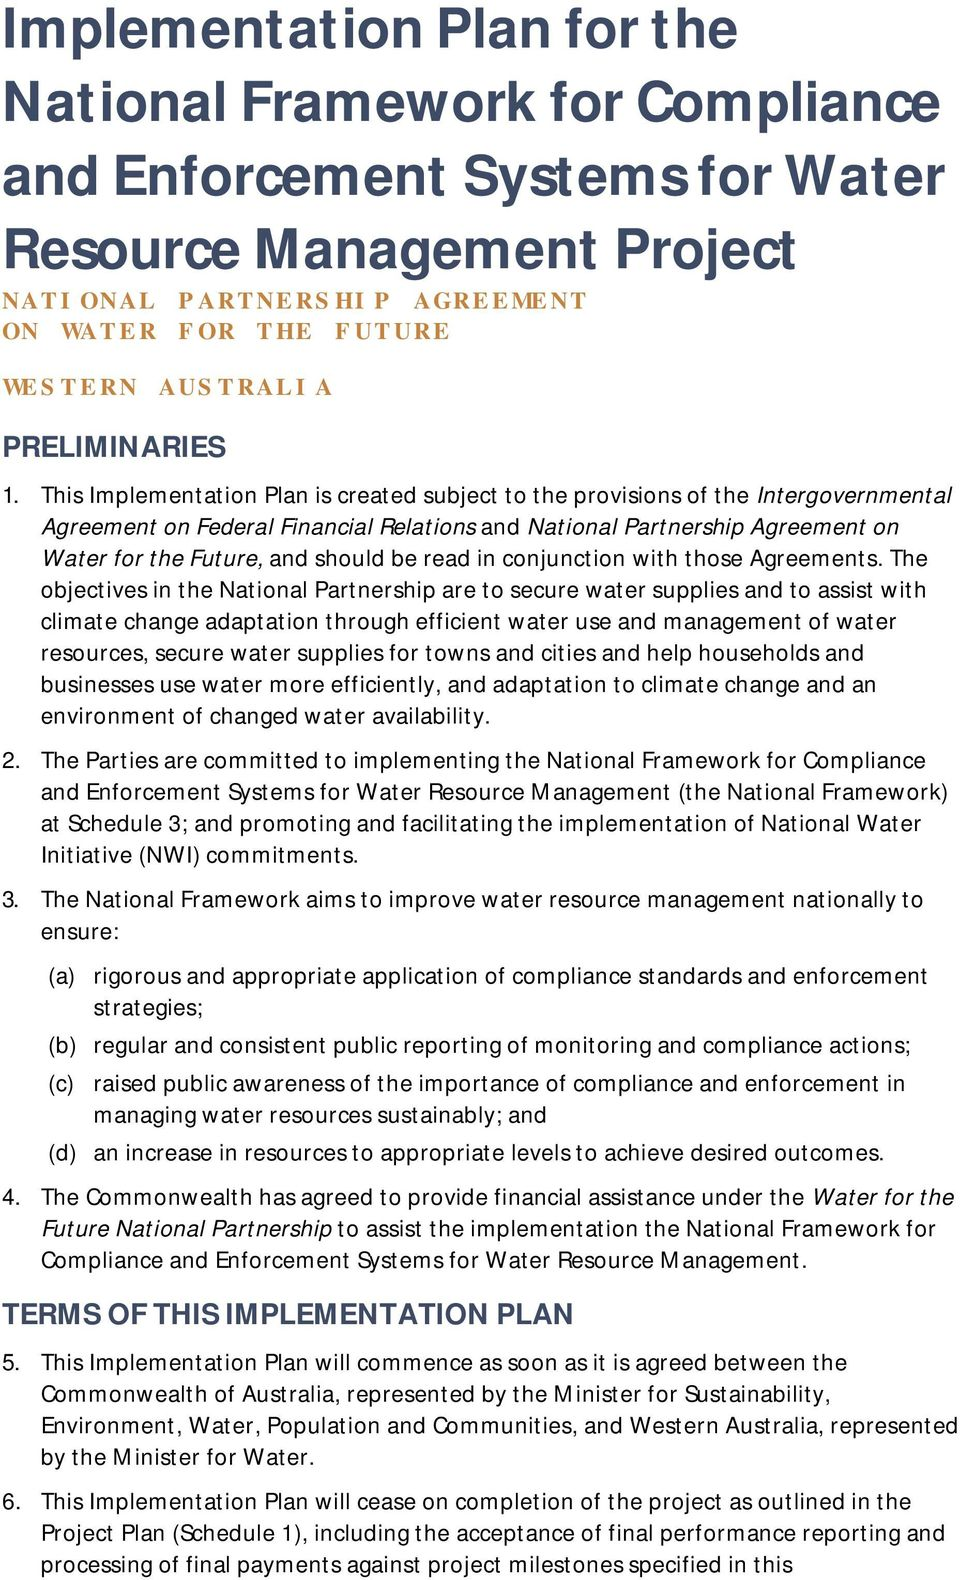 This Implementation Plan is created subject to the provisions of the Intergovernmental Agreement on Federal Financial Relations and National Partnership Agreement on Water for the Future, and should